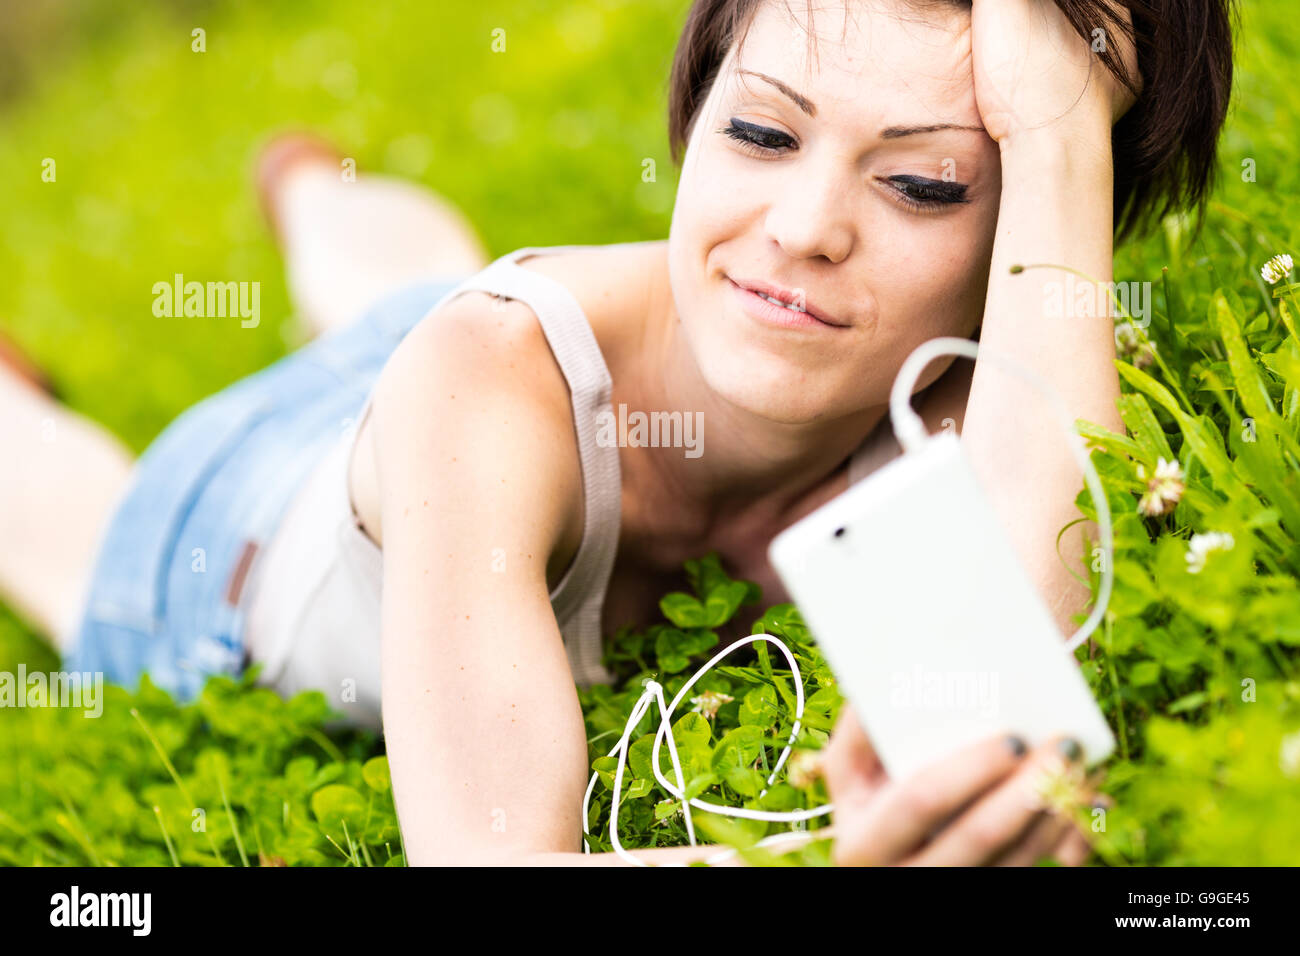 Attractive young woman relaxing in a meadow with her mobile phone and ear plugs reading the screen as she selects - Stock Image